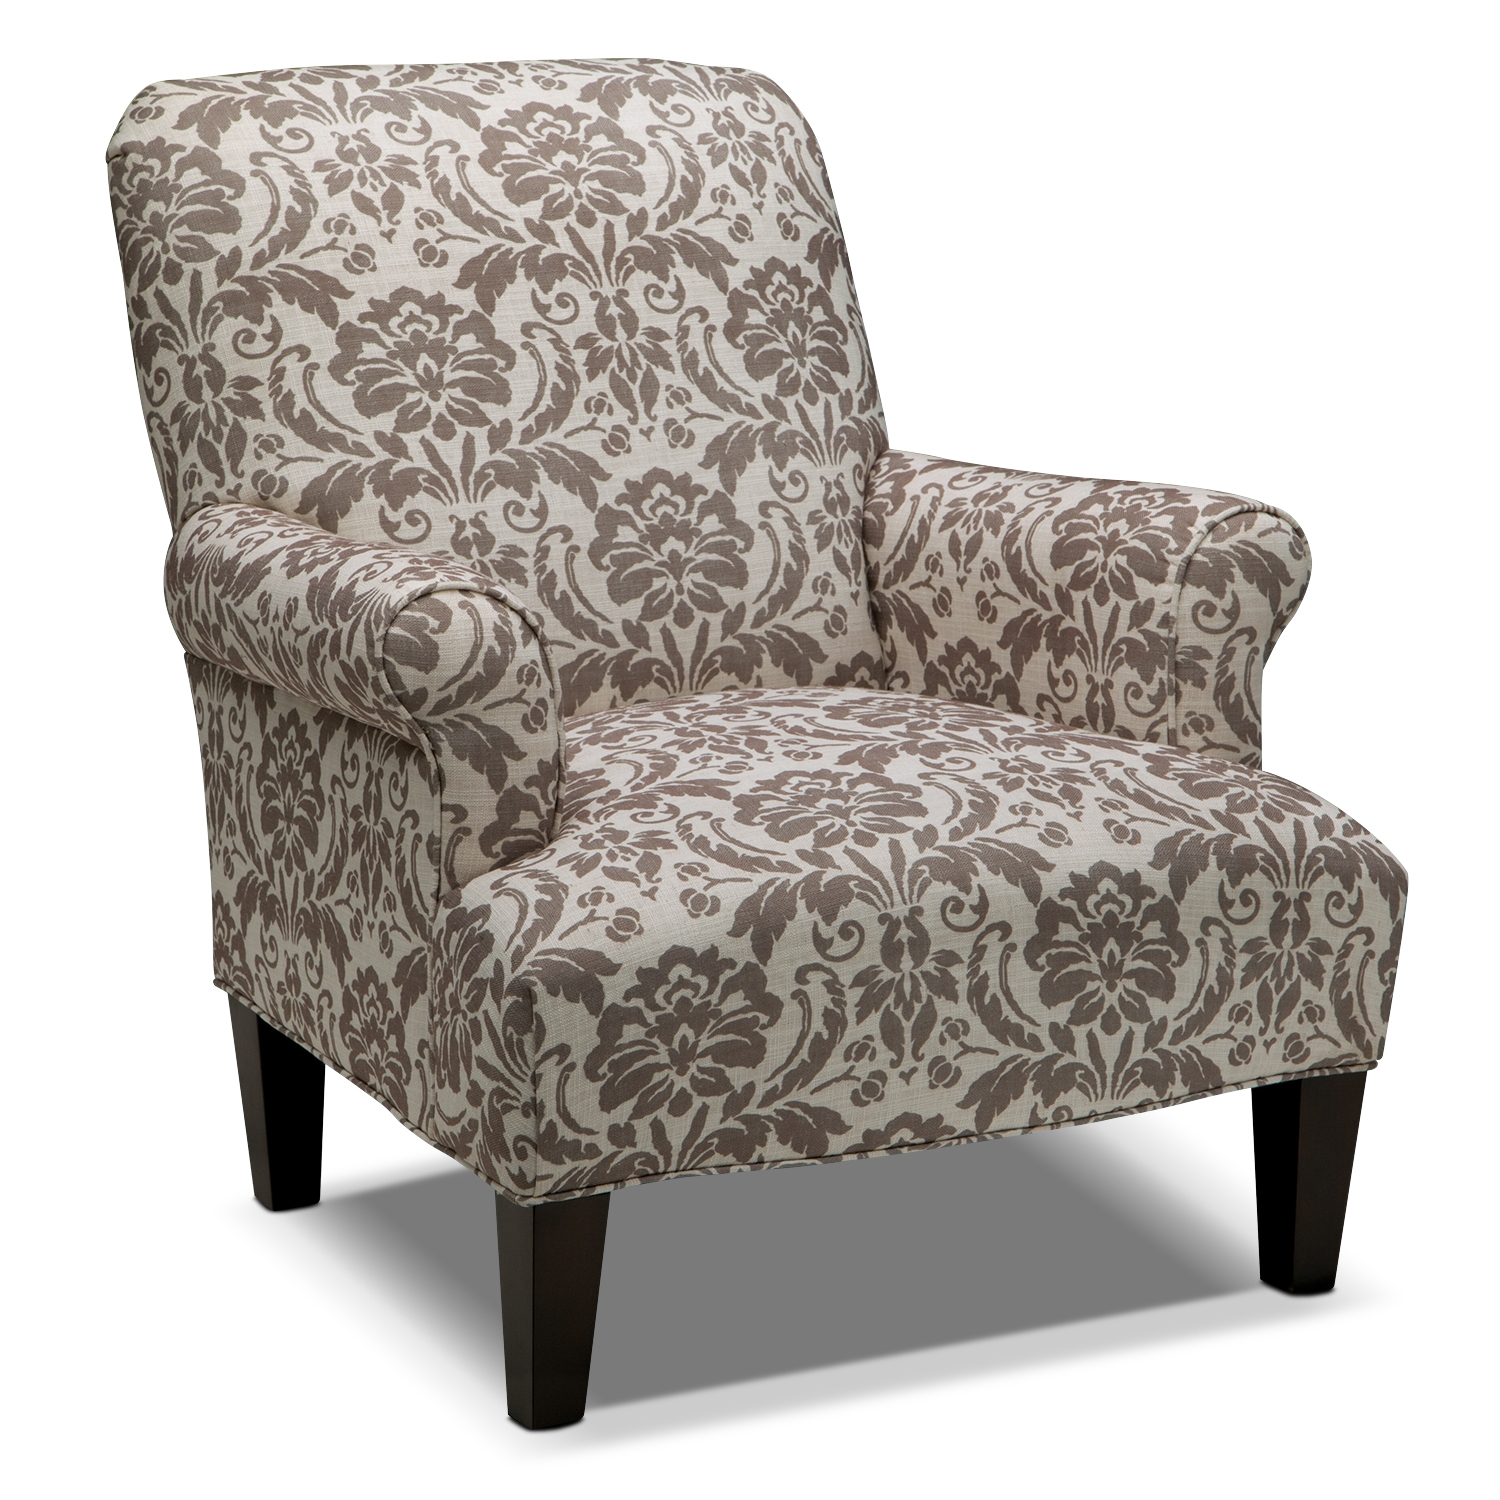 Big Damask Accent Chair With Cream Color - Damask Accent Chair Ideas  HomesFeed - Damask Accent - Damask Accent Chair Heather Bates Design